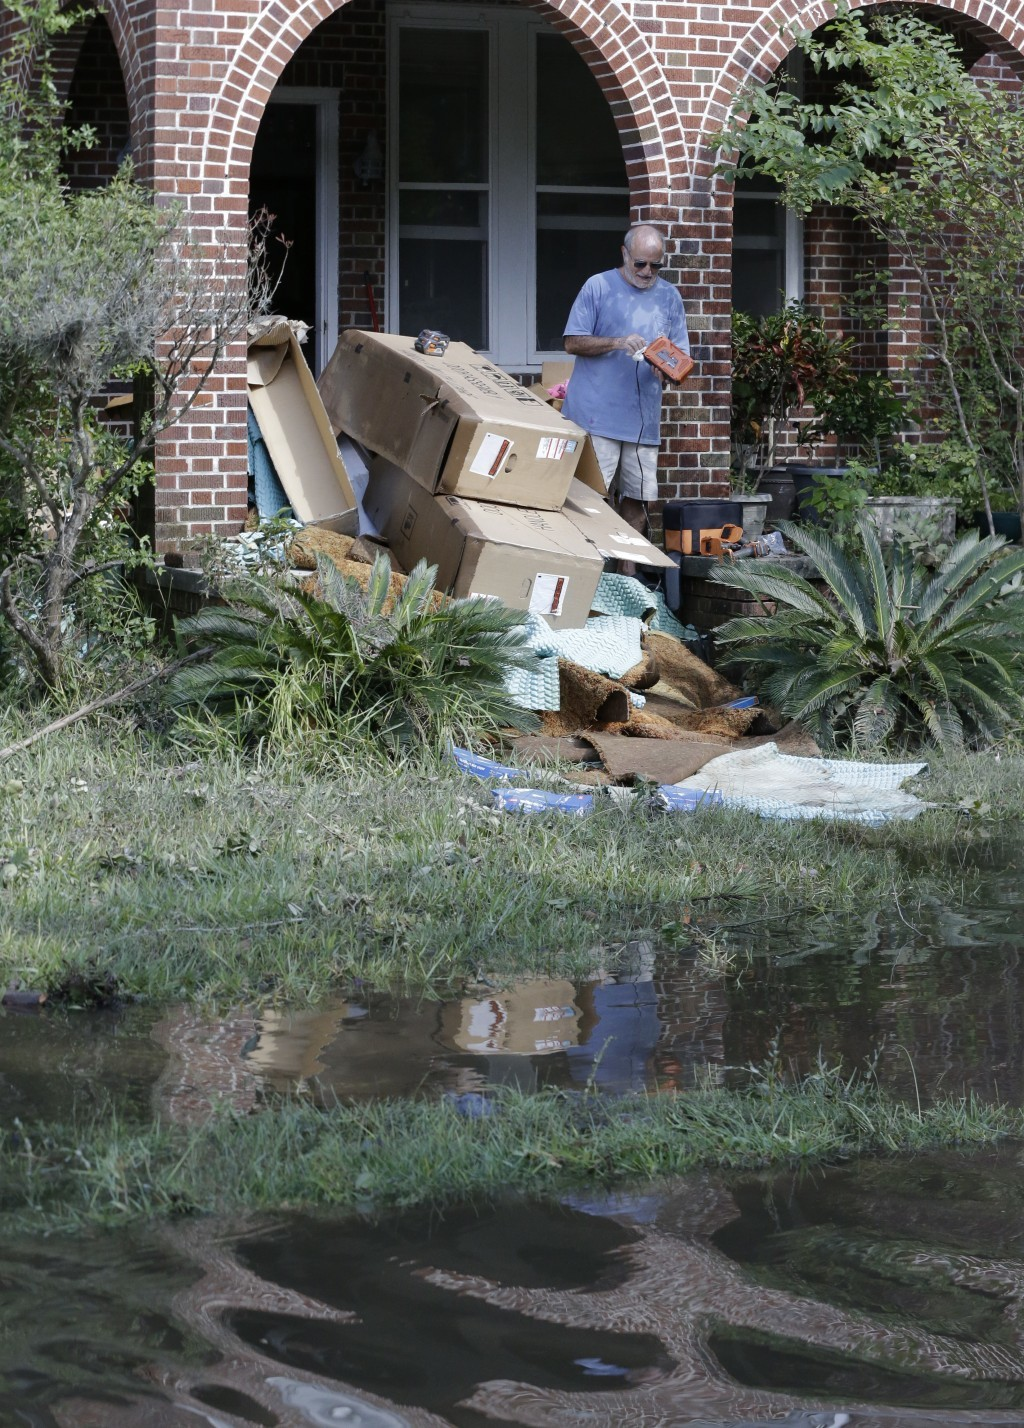 A home owner removes water logged items from his home as floodwaters fill the street in the San Marco area of Jacksonville, Fla. in the aftermath of H...